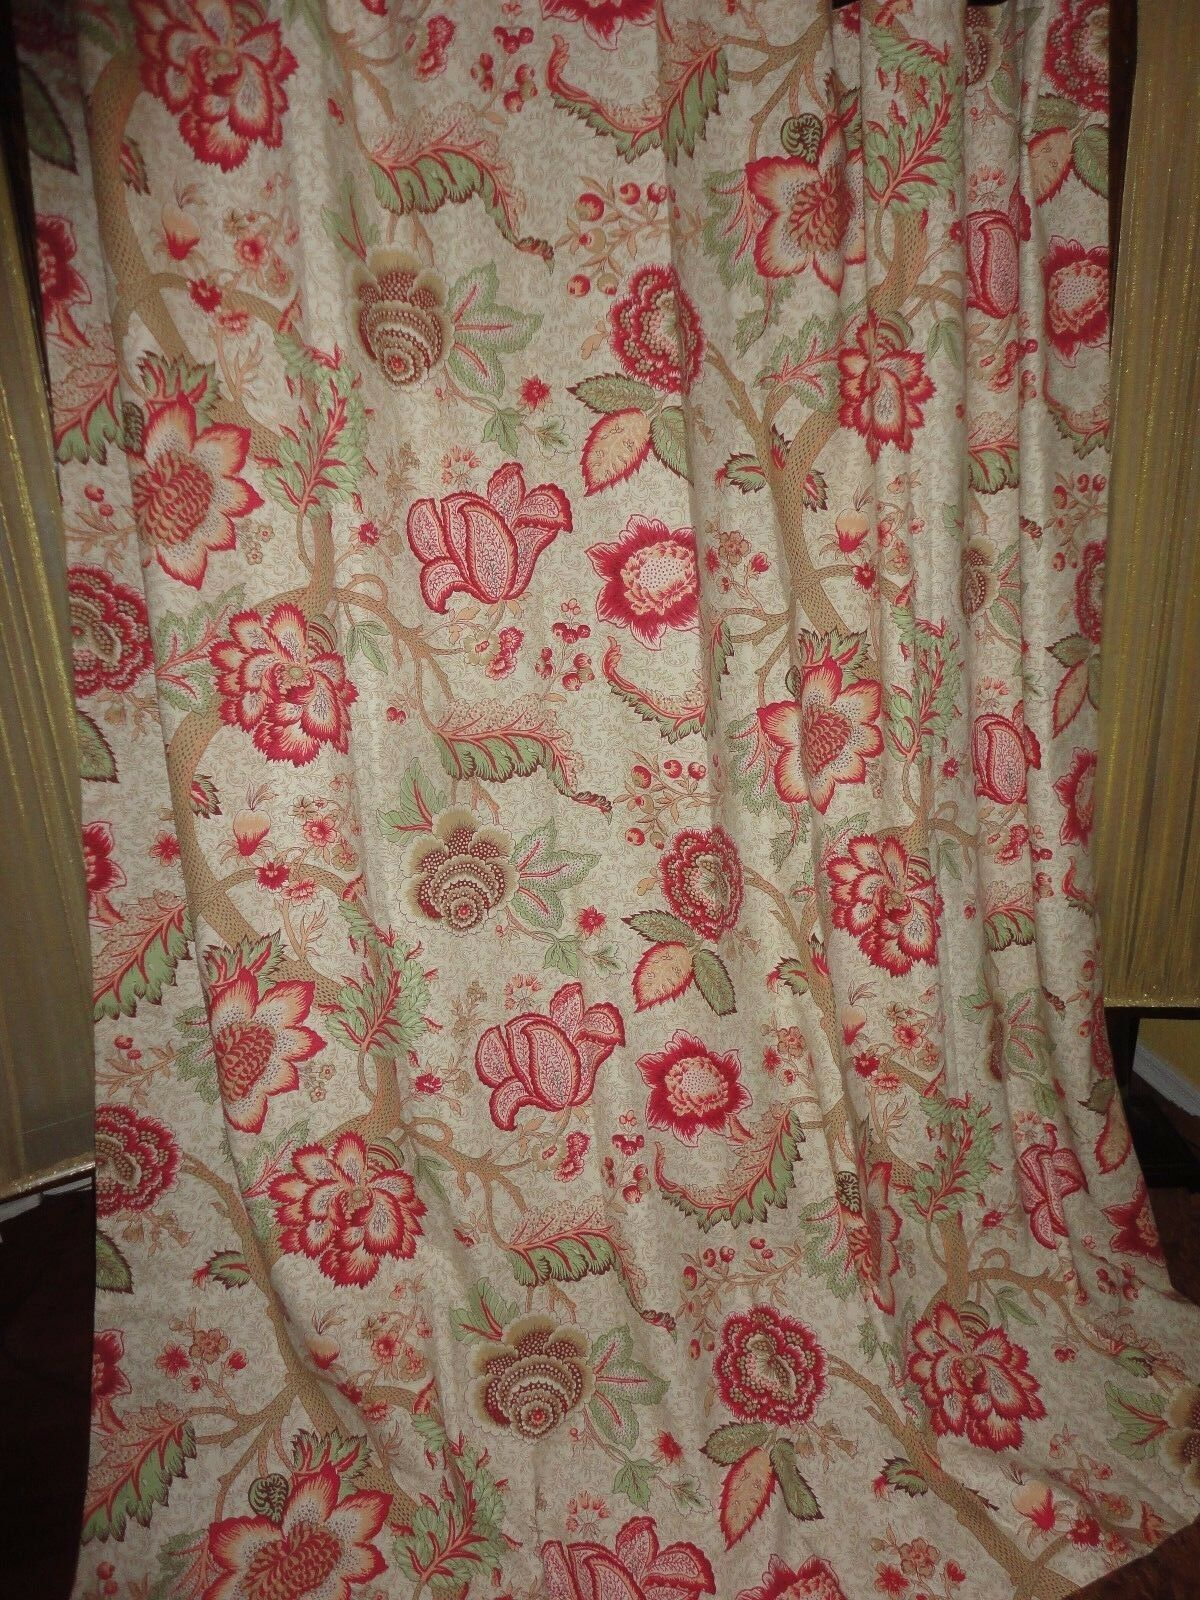 DENTON Rosa TREE ARDEN JACOBEAN FLORAL Grun Rot SHOWER CURTAIN 72 X 74 3415d1